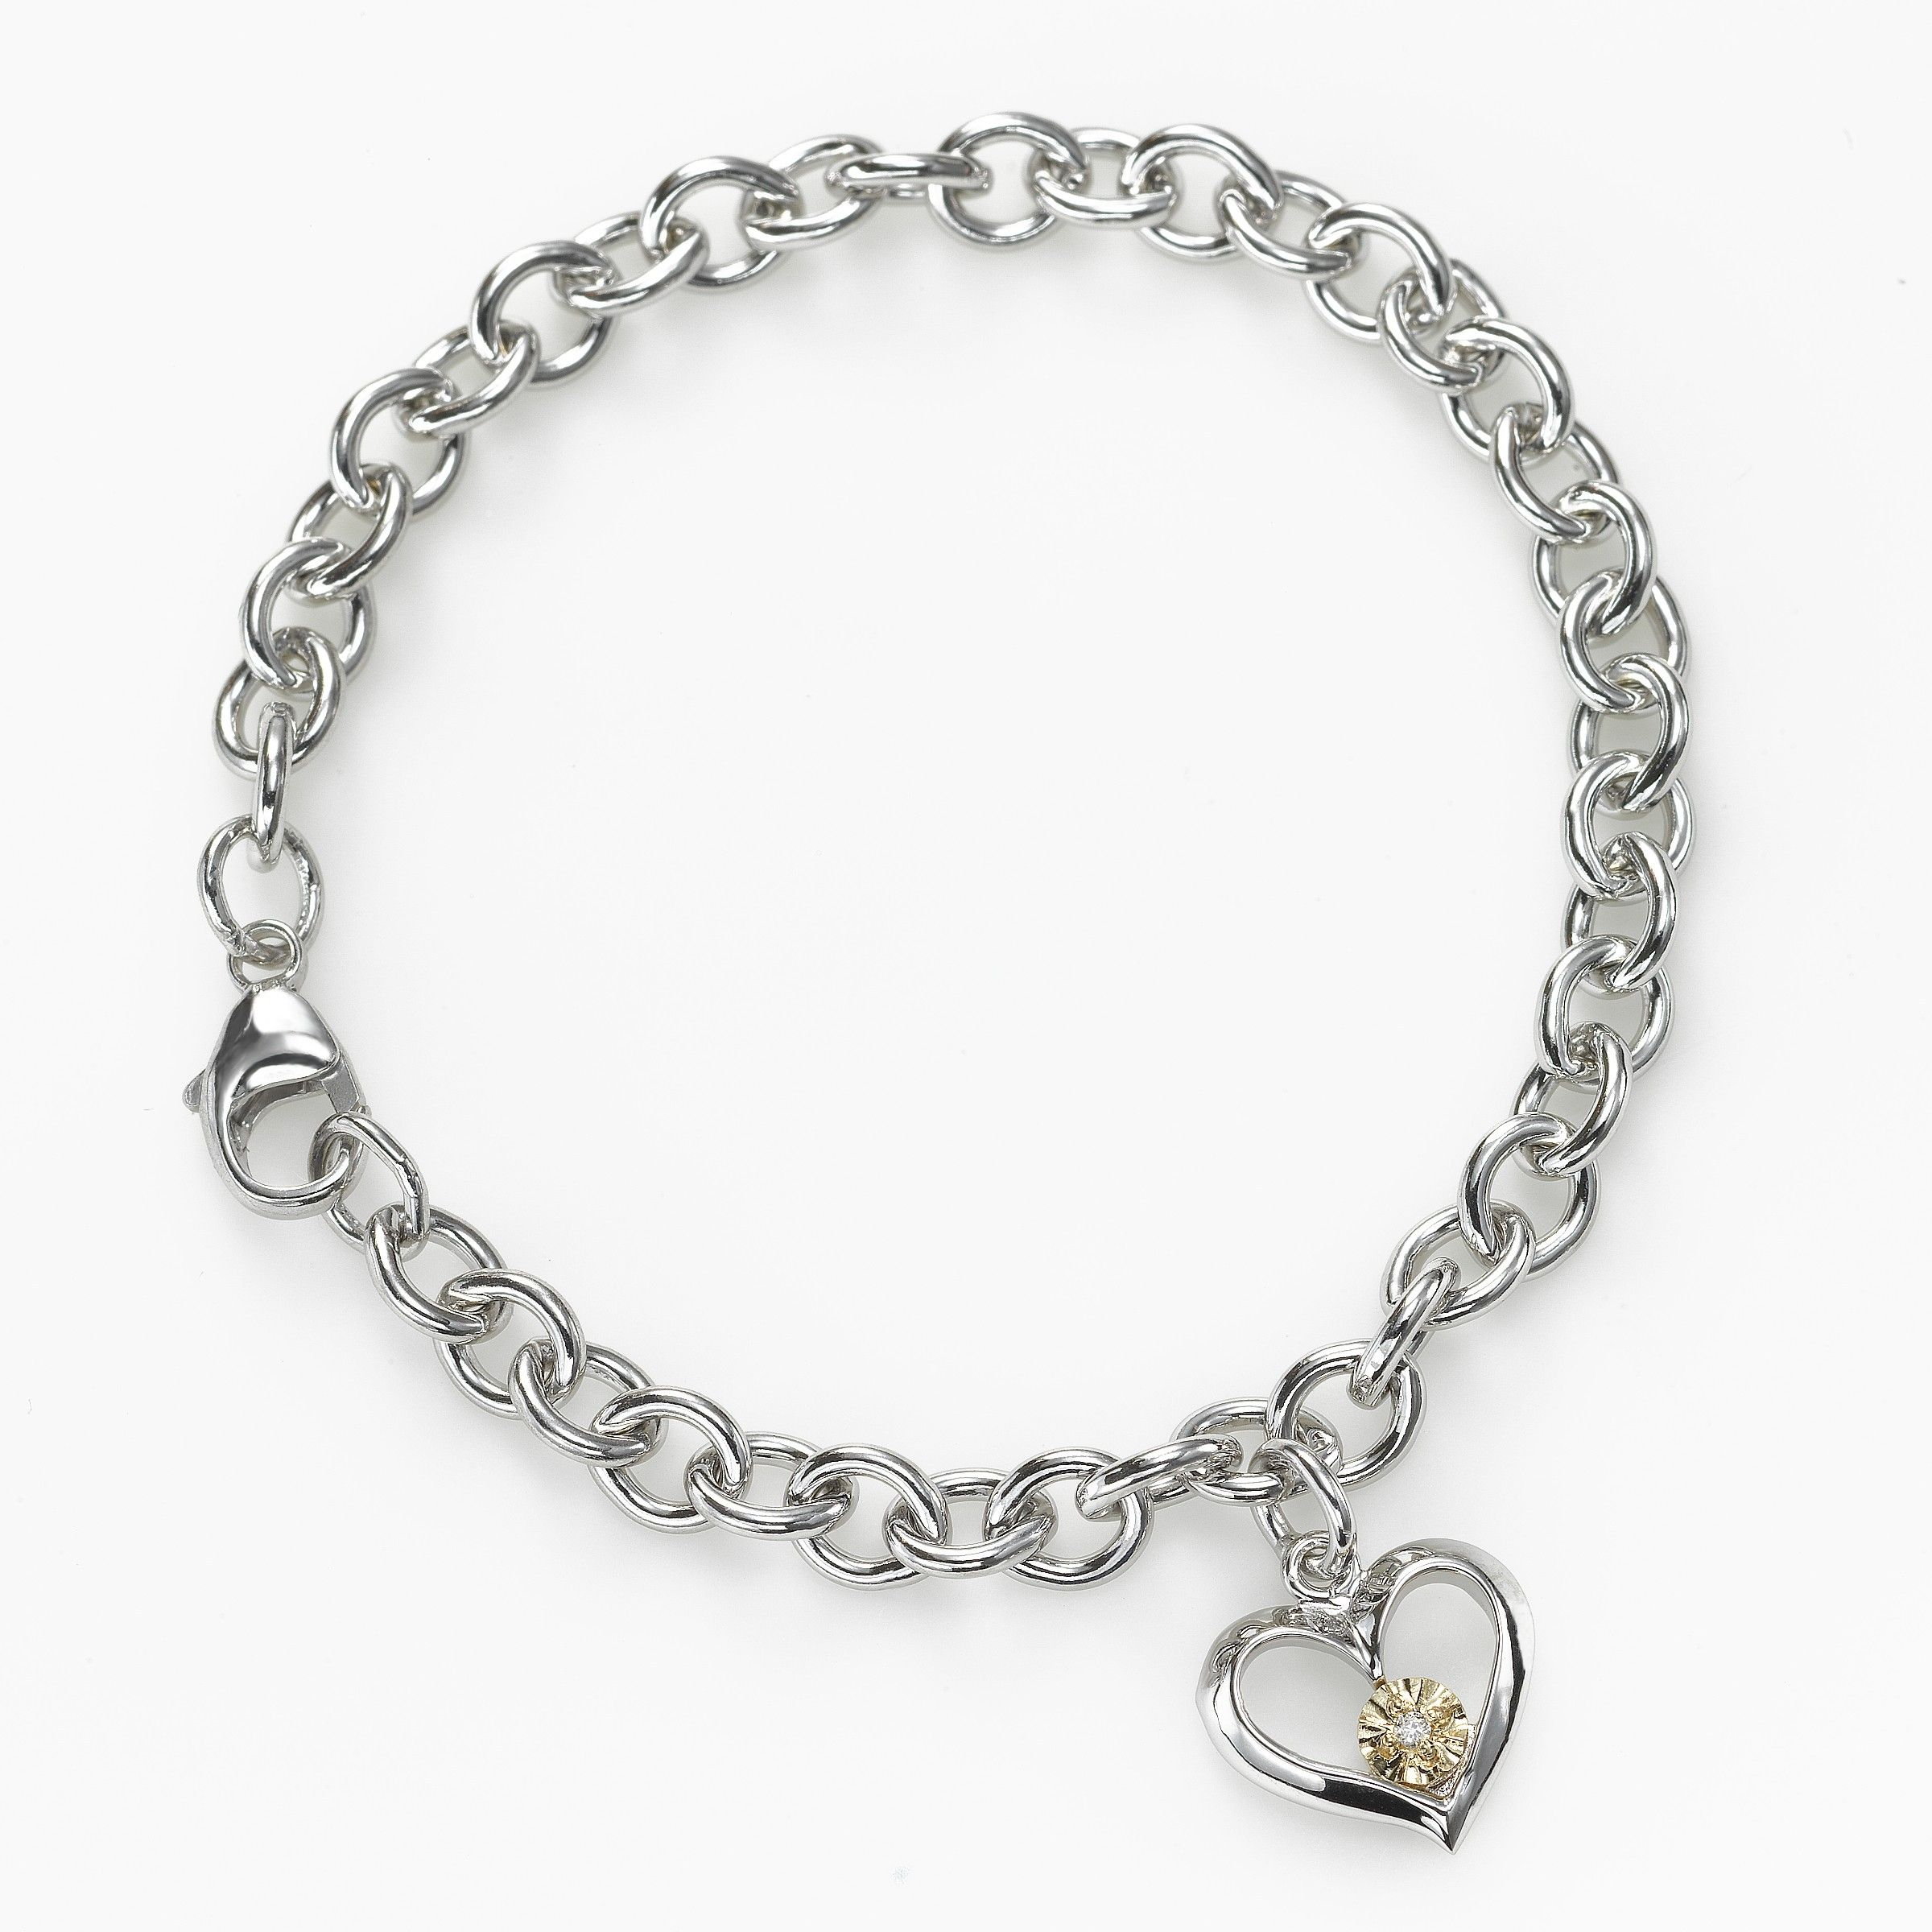 This sweet bracelet would make a perfect Valentine for a special young lady. The sterling silver links are accented by an open heart, with an accent of 14k yellow gold and a single diamond, .01 carat. The lobster clasp closure is cleverly designed to be attachable at any length along the bracelet, to be worn now and for years to come. Length overall is 6.75 inches. You'll also receive 15% OFF, SITE WIDE between now and Feb 12 -- just enter VALENTINE at checkout.